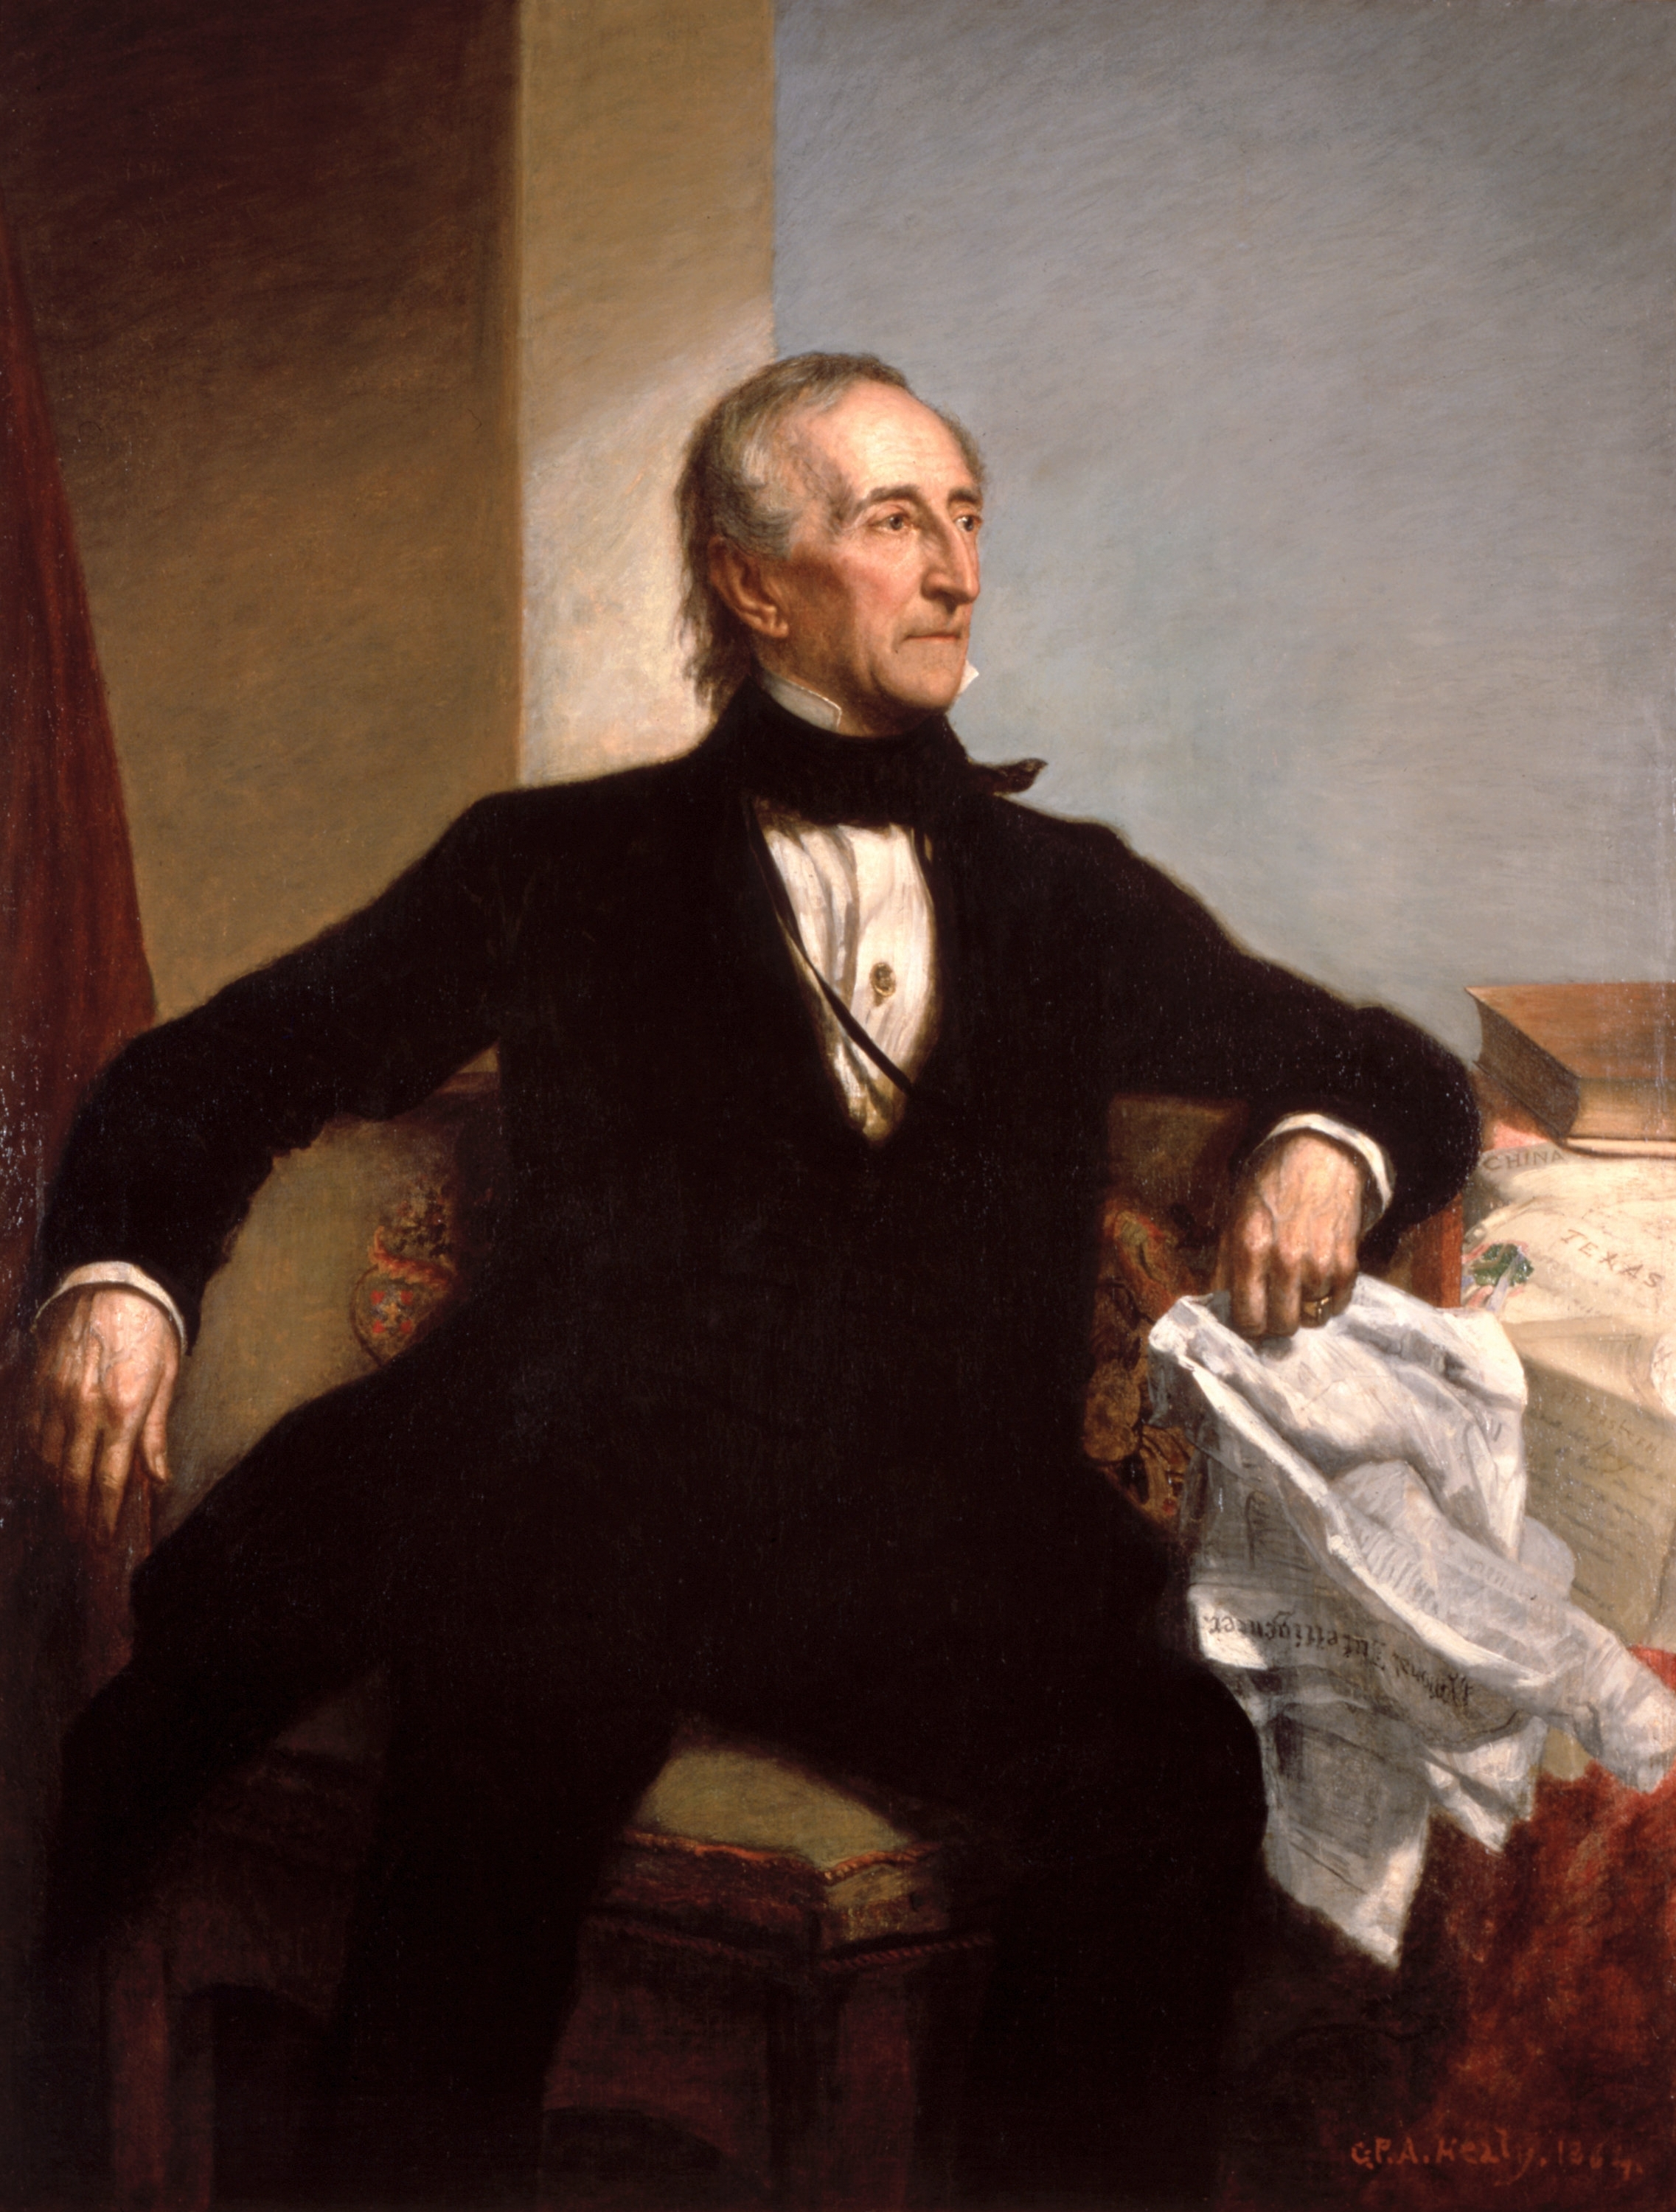 Official White House portrait of John Tyler, oil on canvas, 1859 by George P. A. Healy. Located in the Blue Room.